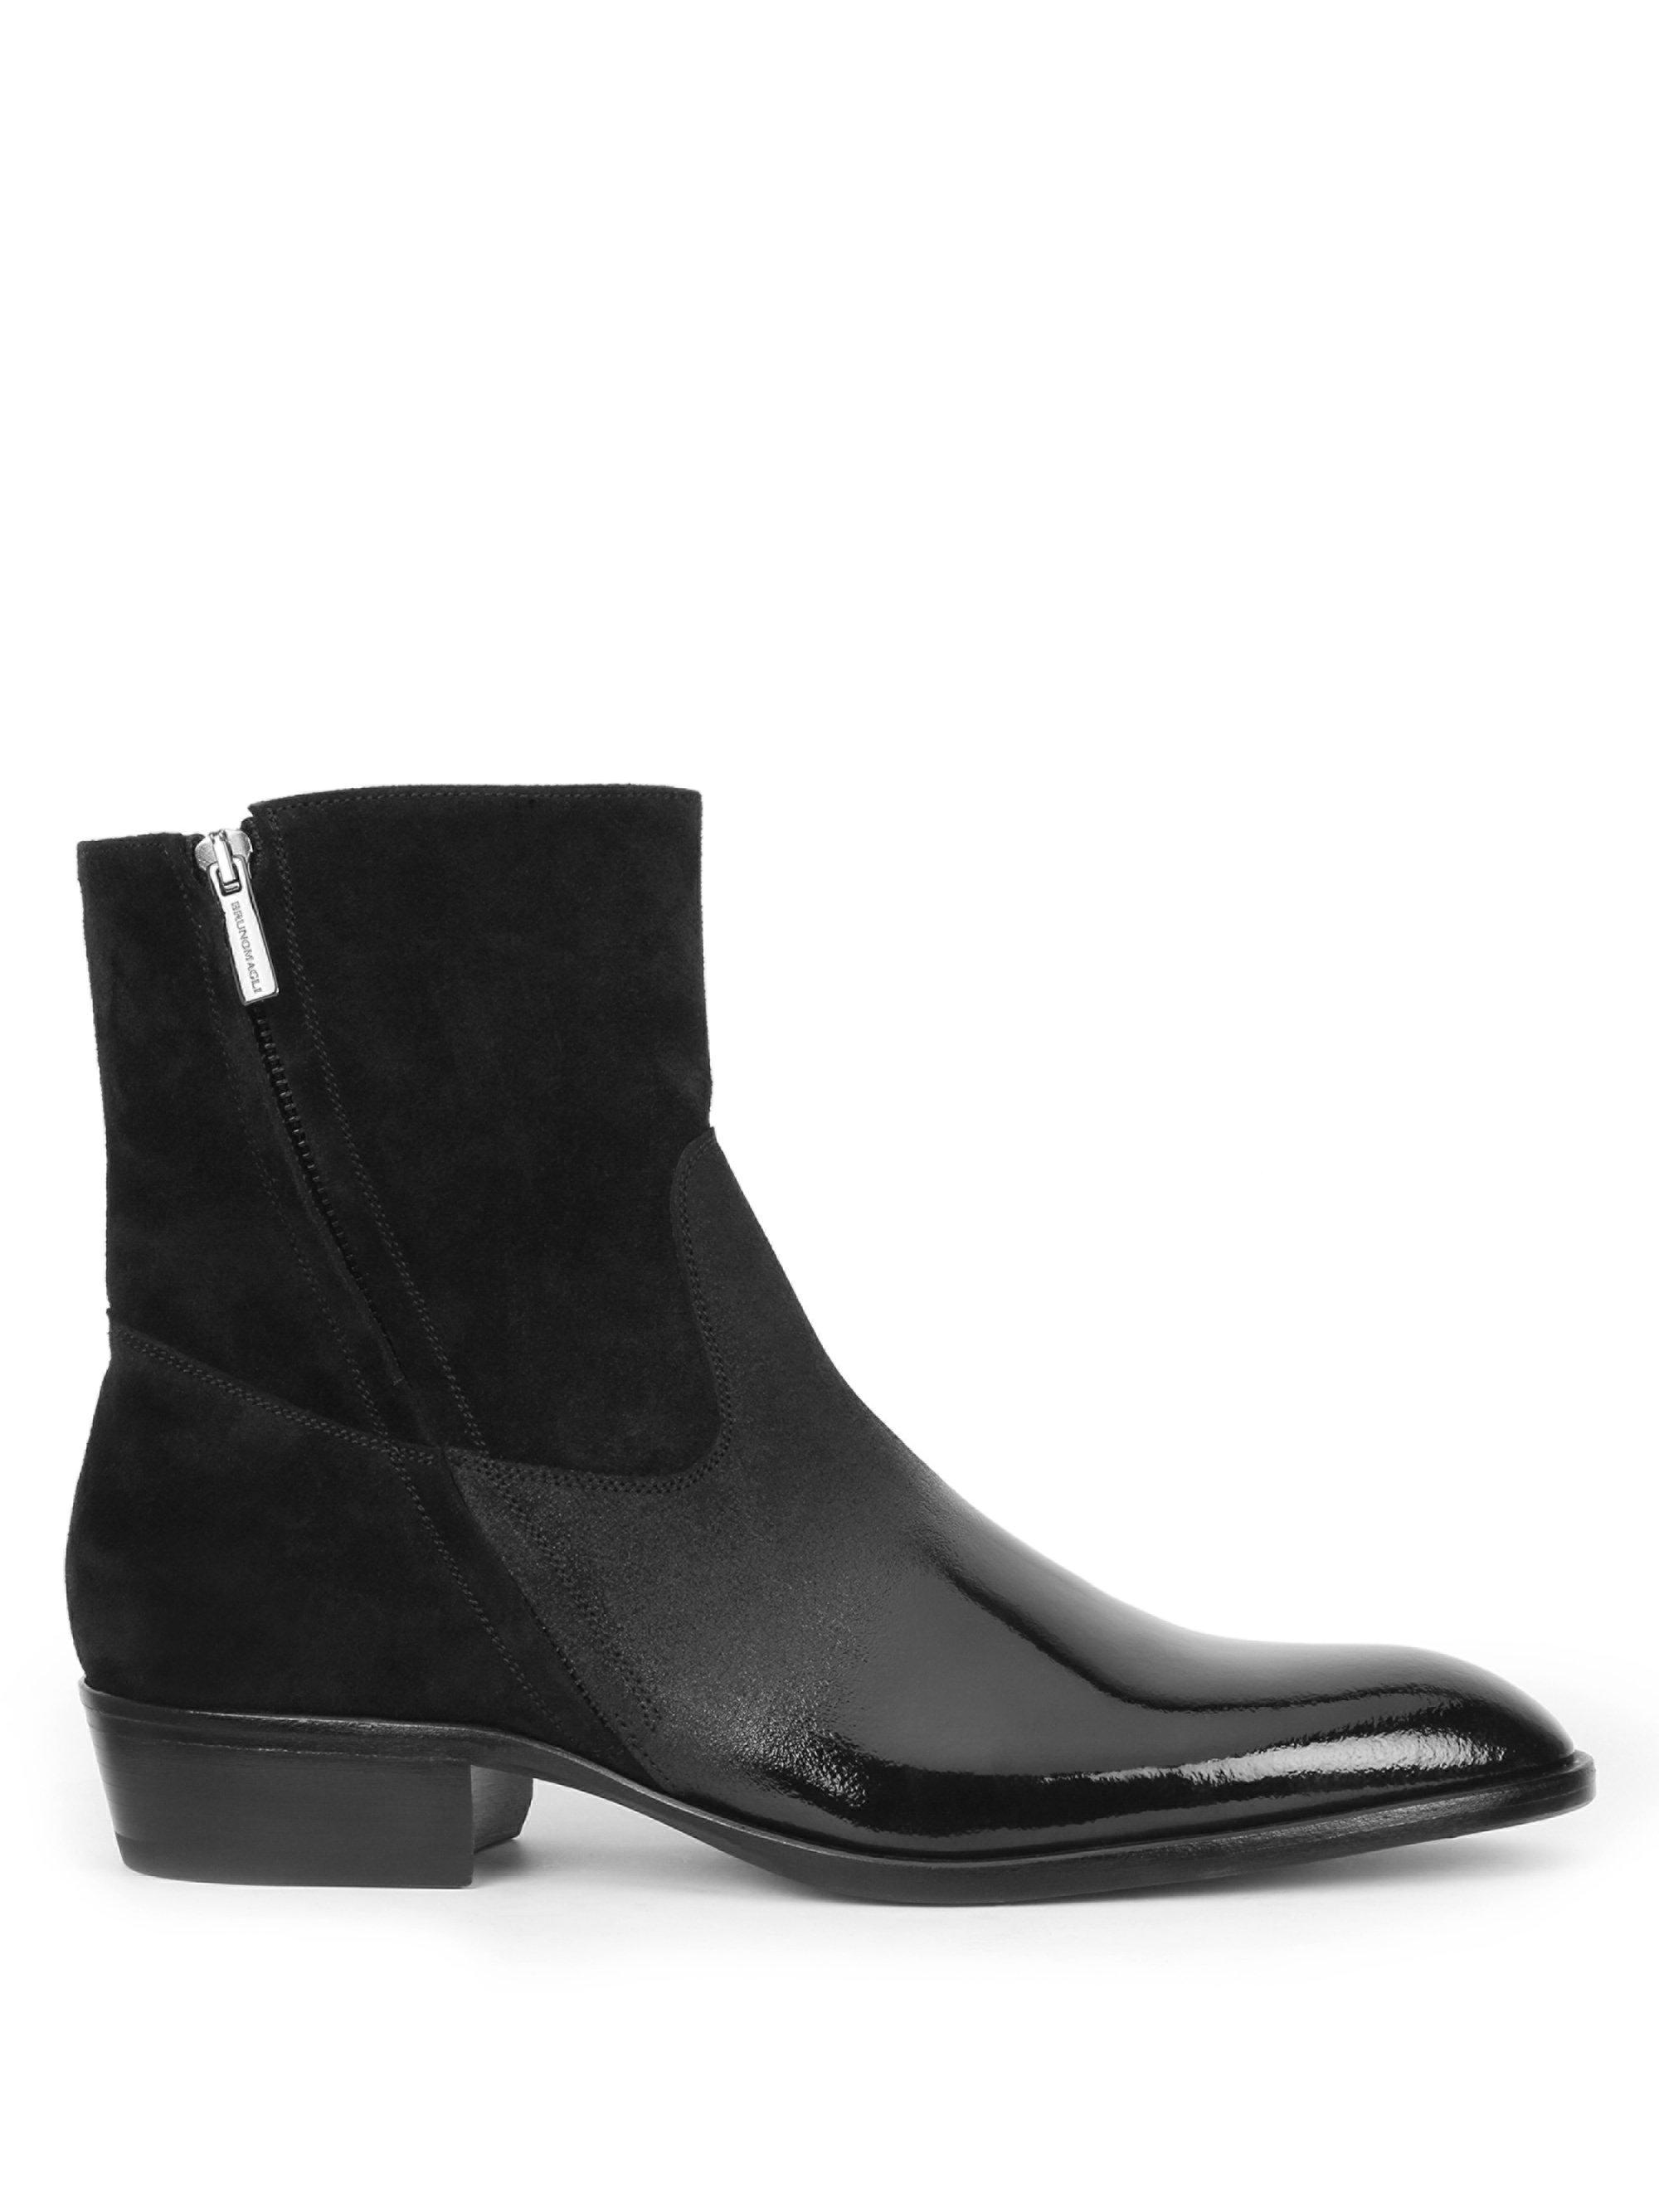 Bruno MagliRisoli Suede and Patent Leather Boots slPgN2